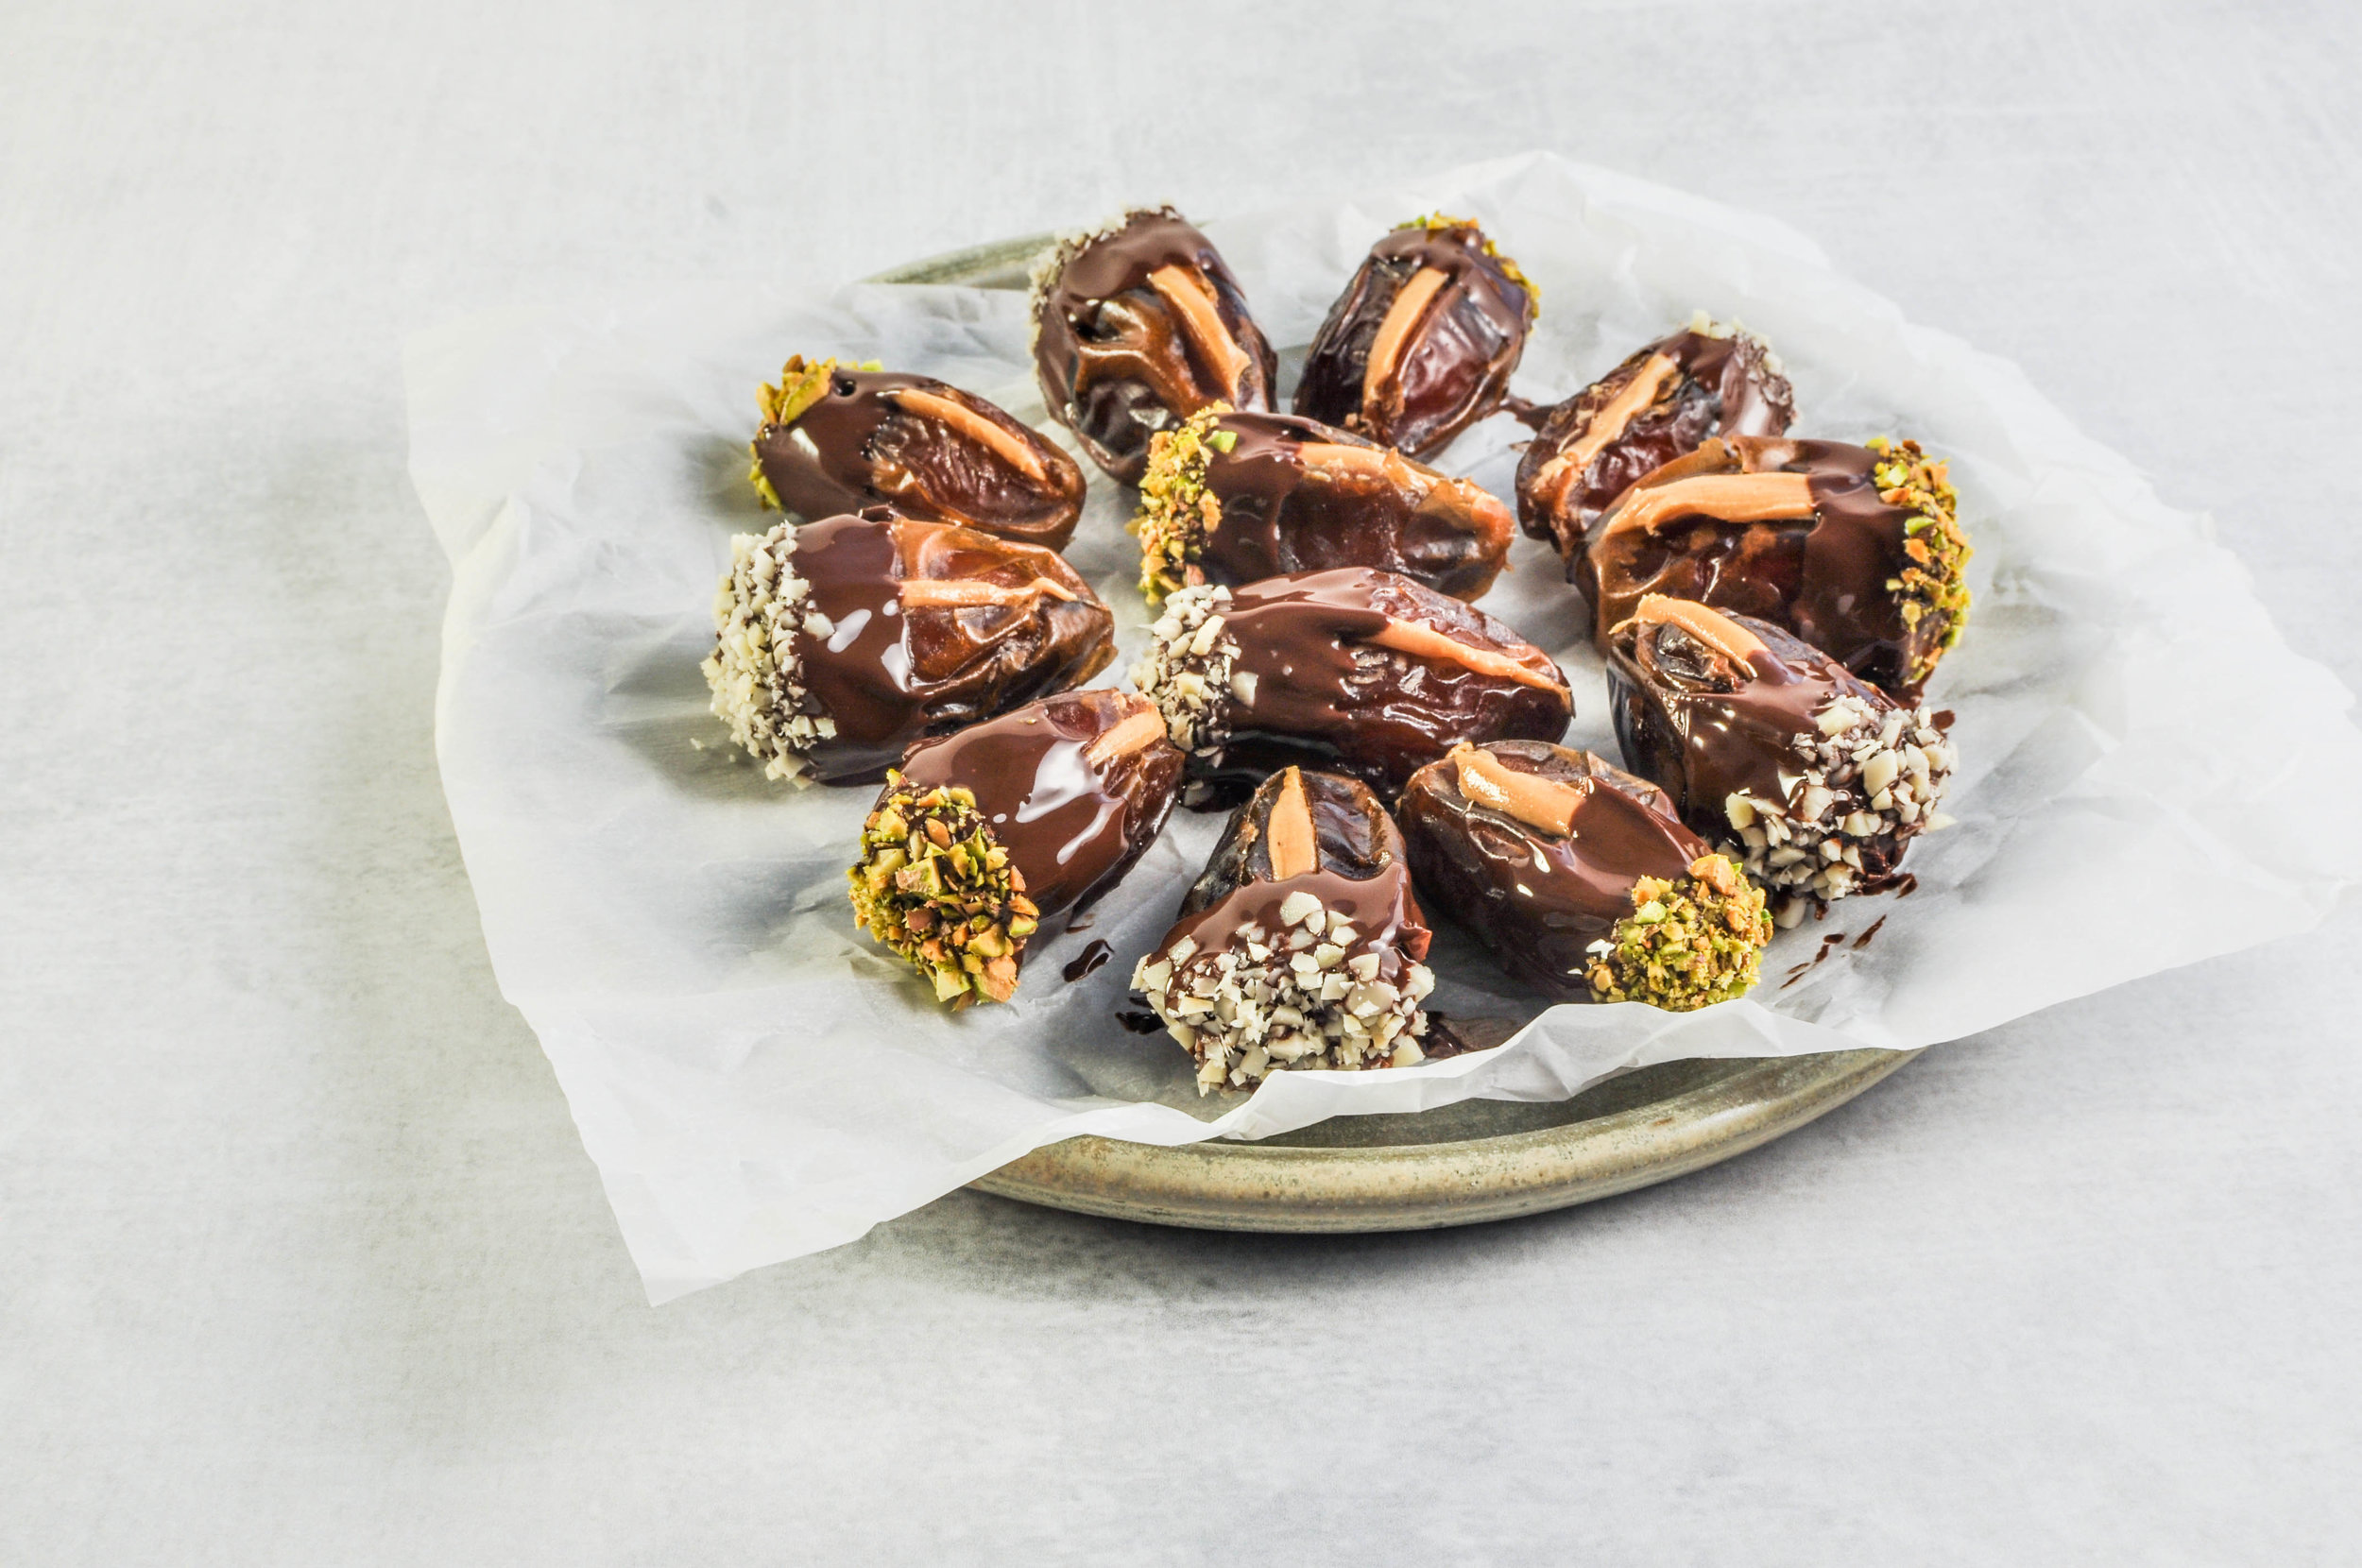 Peanut Butter Stuffed Chocolate Covered Dates with Almonds & Pistachios - a healthy, easy snack or dessert.